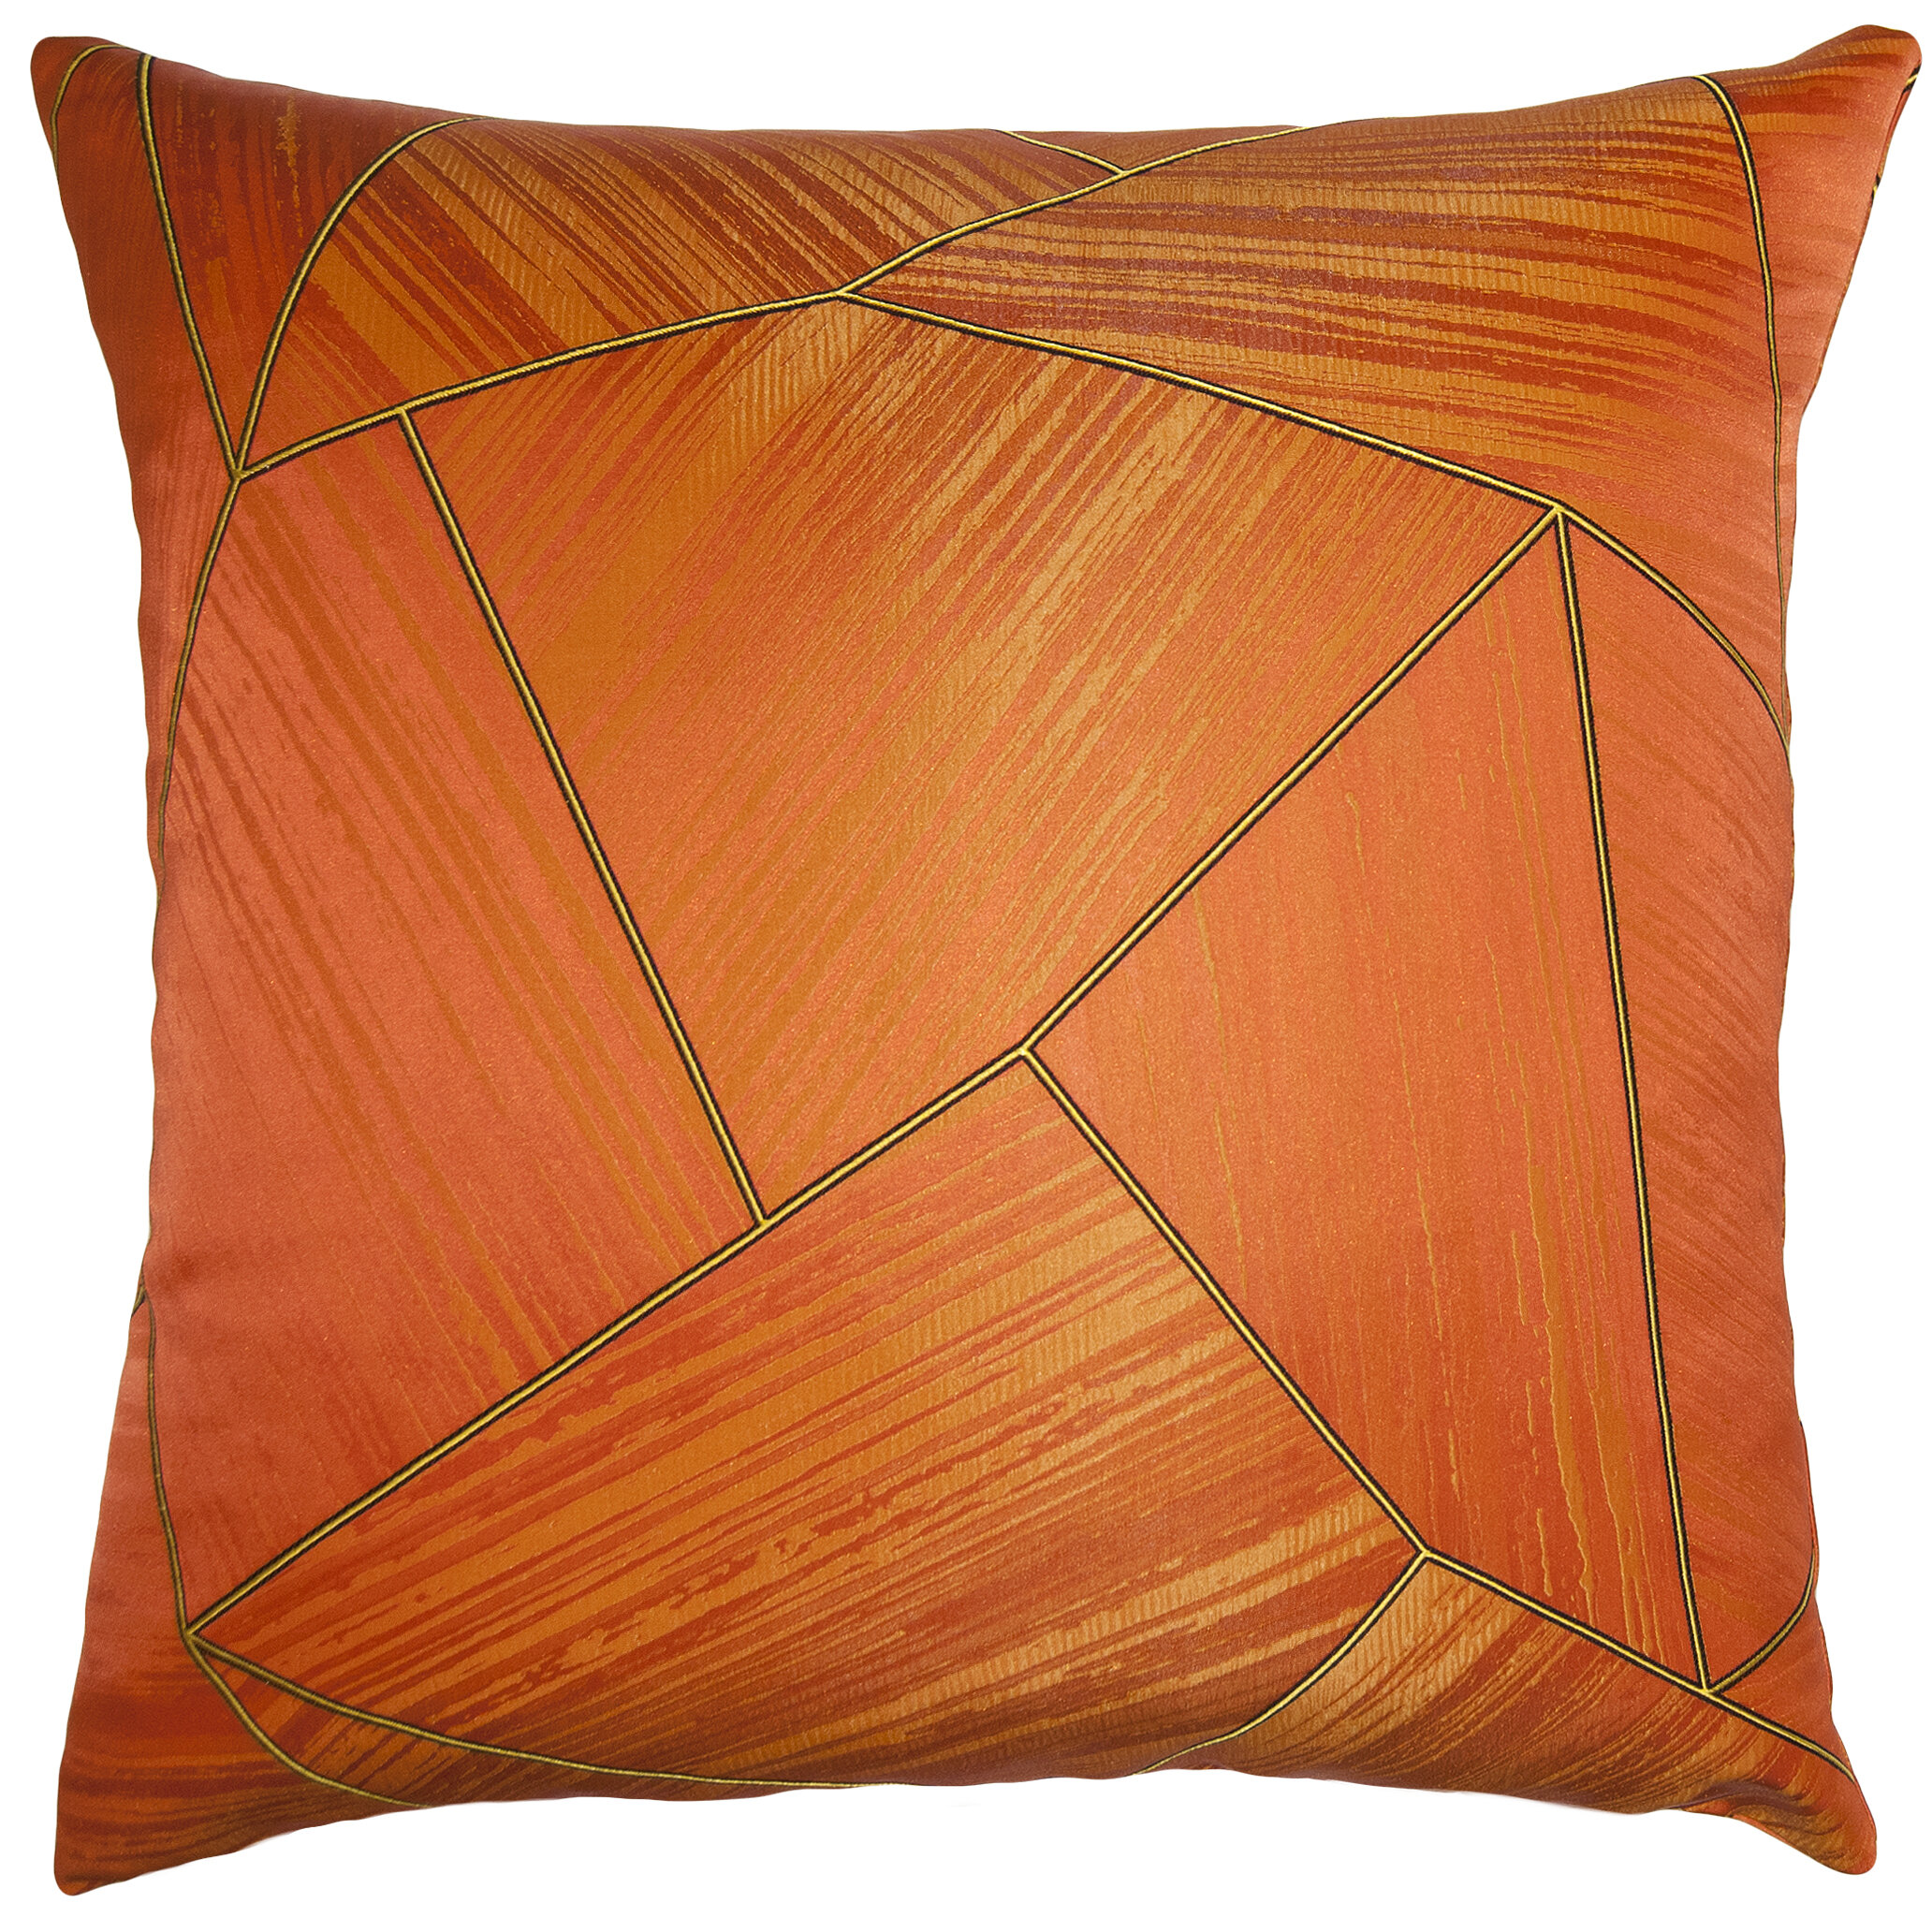 Square Feathers Carnival Throw Pillow Wayfair